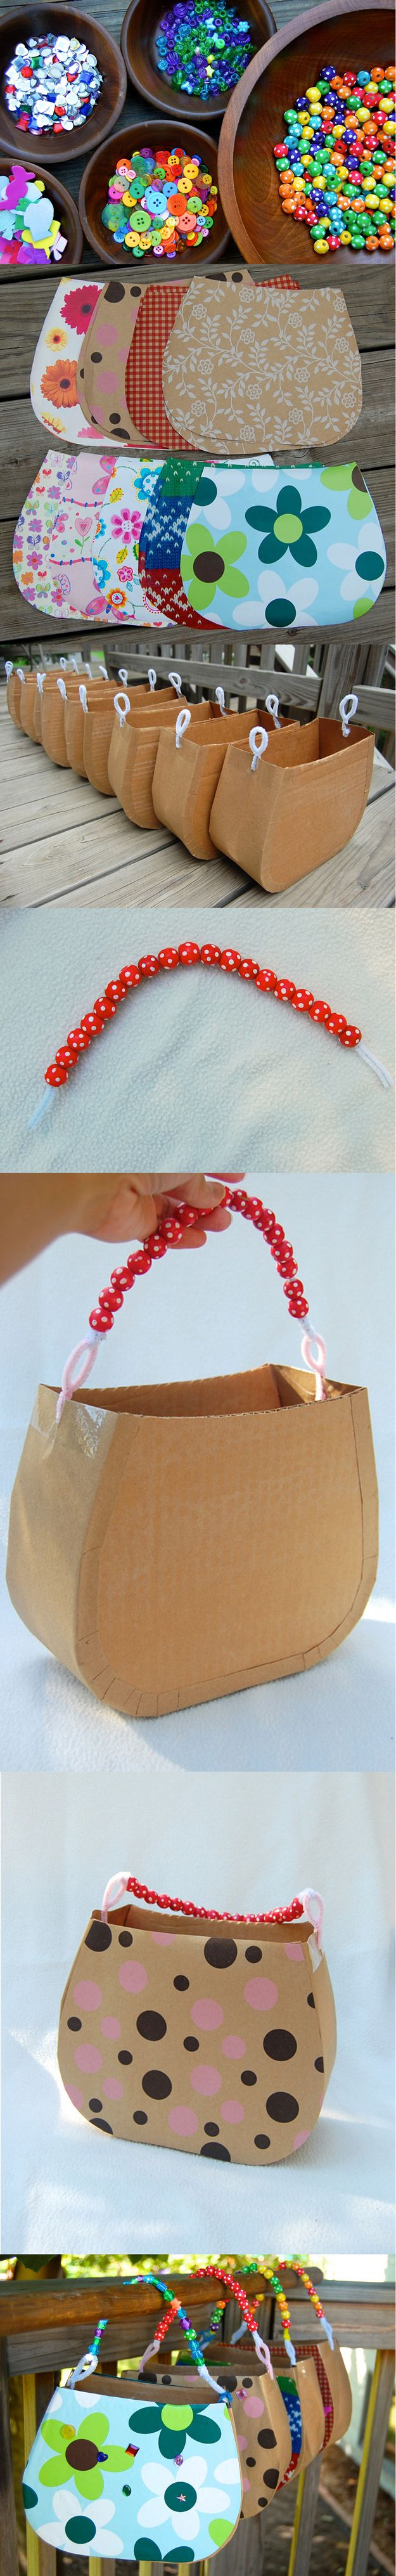 Cardboard Handbags   Cute and Fun Birthday Activities For Girls by Diy Ready http://diyready.com/19-awesome-birthday-party-craft-ideas-that-will-make-your-day-special/